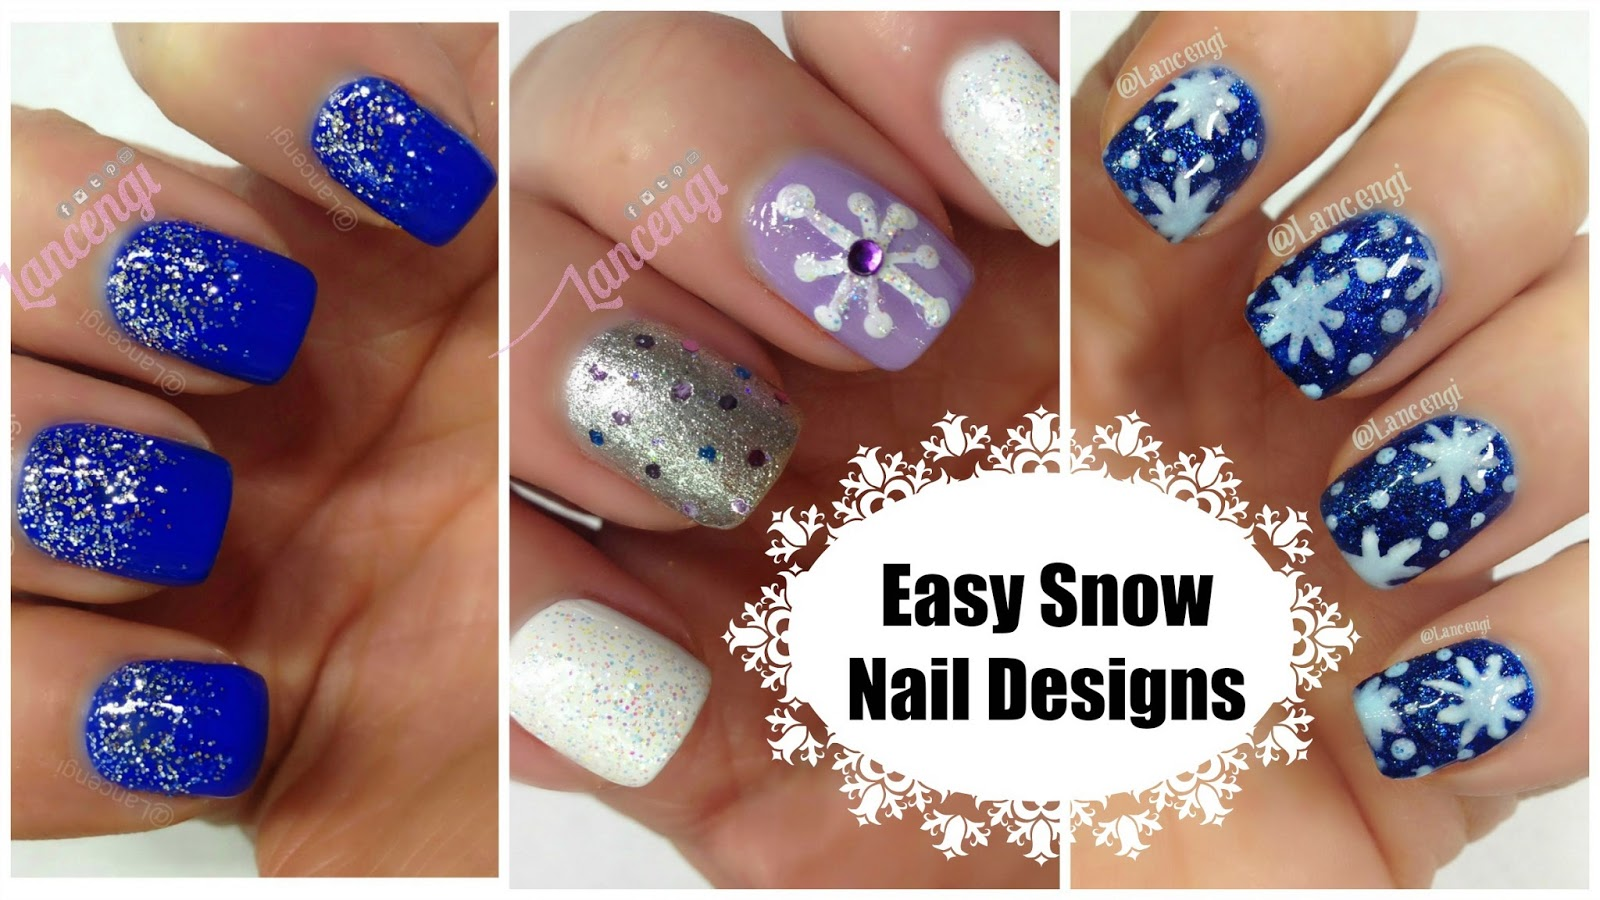 The Ultimate Christmas Guide – 3 Easy Snowflake Nail Design ...